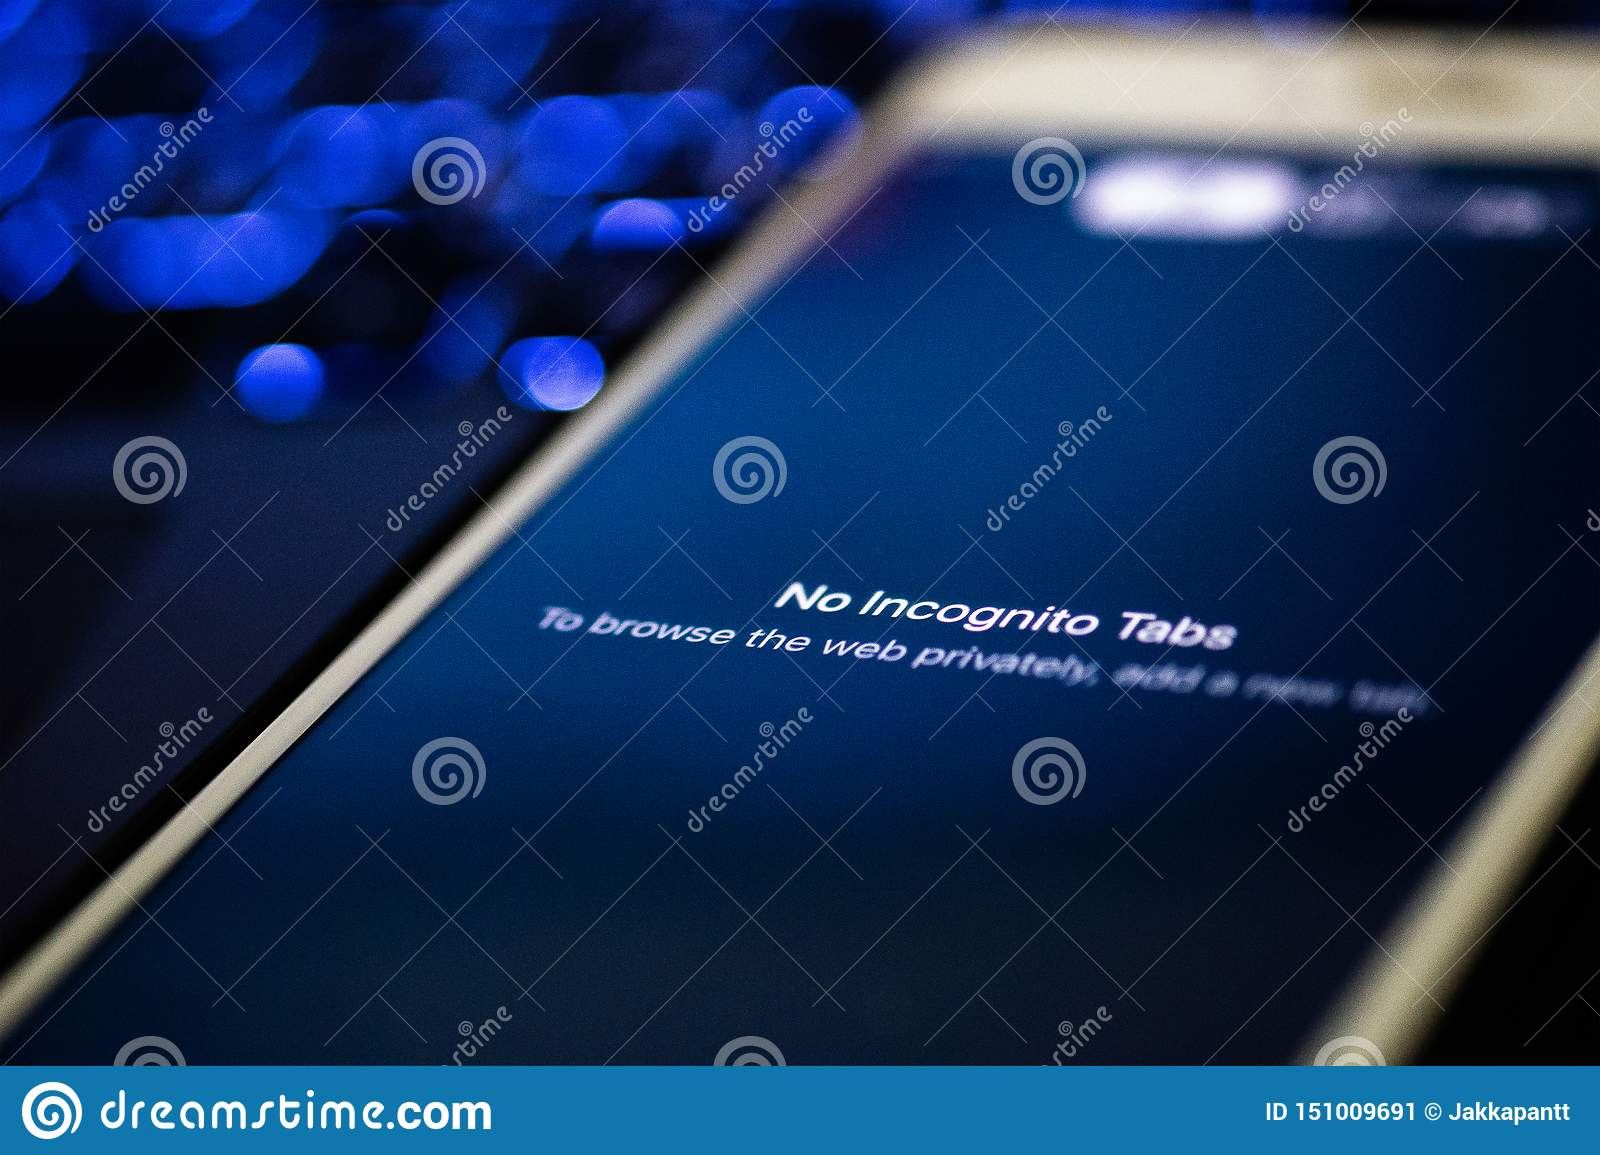 Chiangmai / Thailand - 2019 June 20: Mobile phone with google chrome browser in incognito mode, Sercurity concept